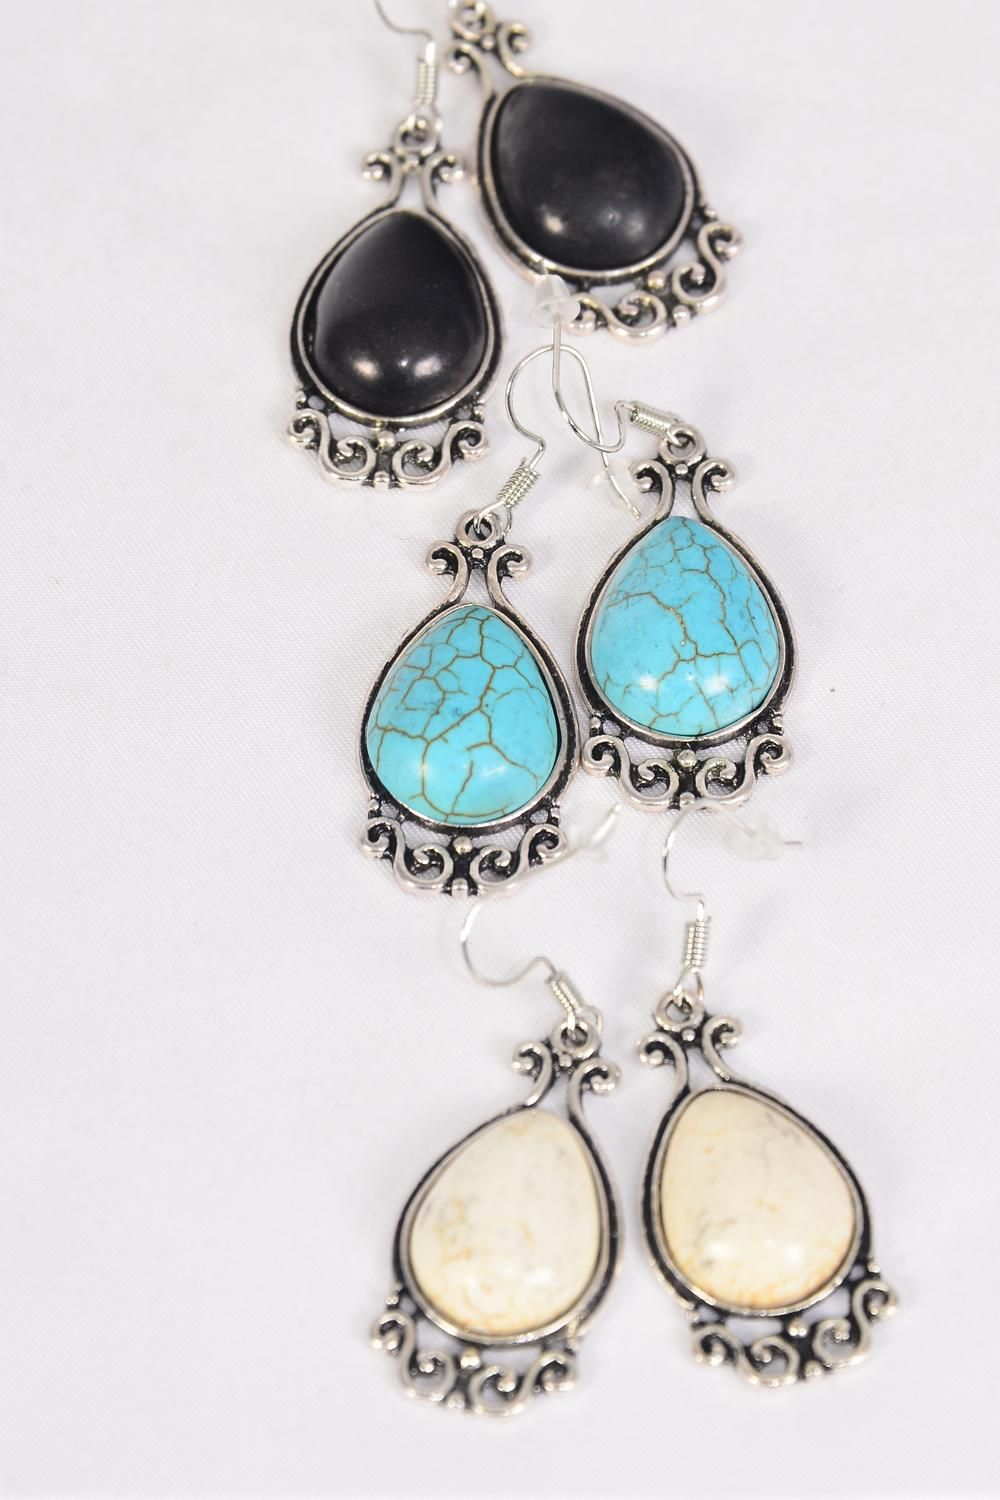 "Earrings Metal Antique Teardrop Dangle Semiprecious Stone/DZ **Fish Hook** Size-1.5""x 0.75"" Wide,4 Black,4 Ivory,4 Turquoise Asst,Earring Card & OPP Bag & UPC Code -"